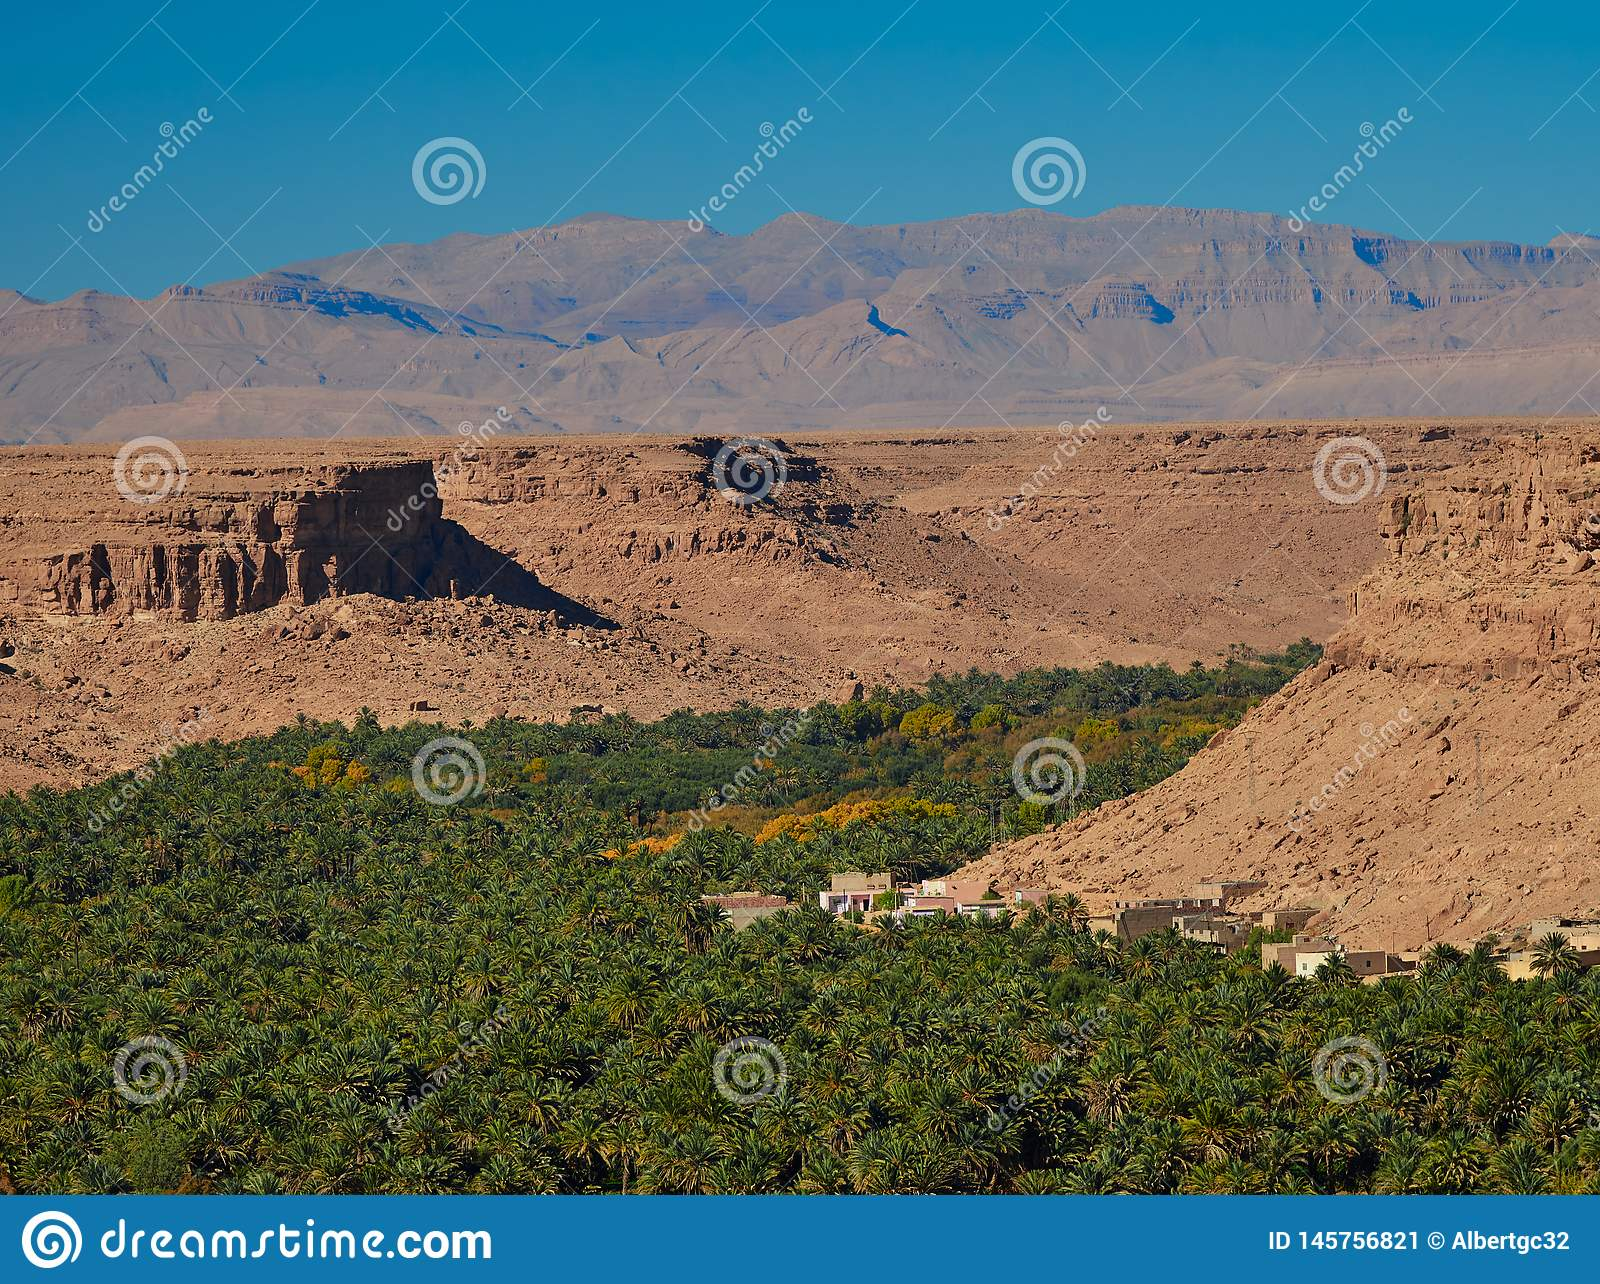 Huge palm grove in Ziz valley, Morocco. Aerial view